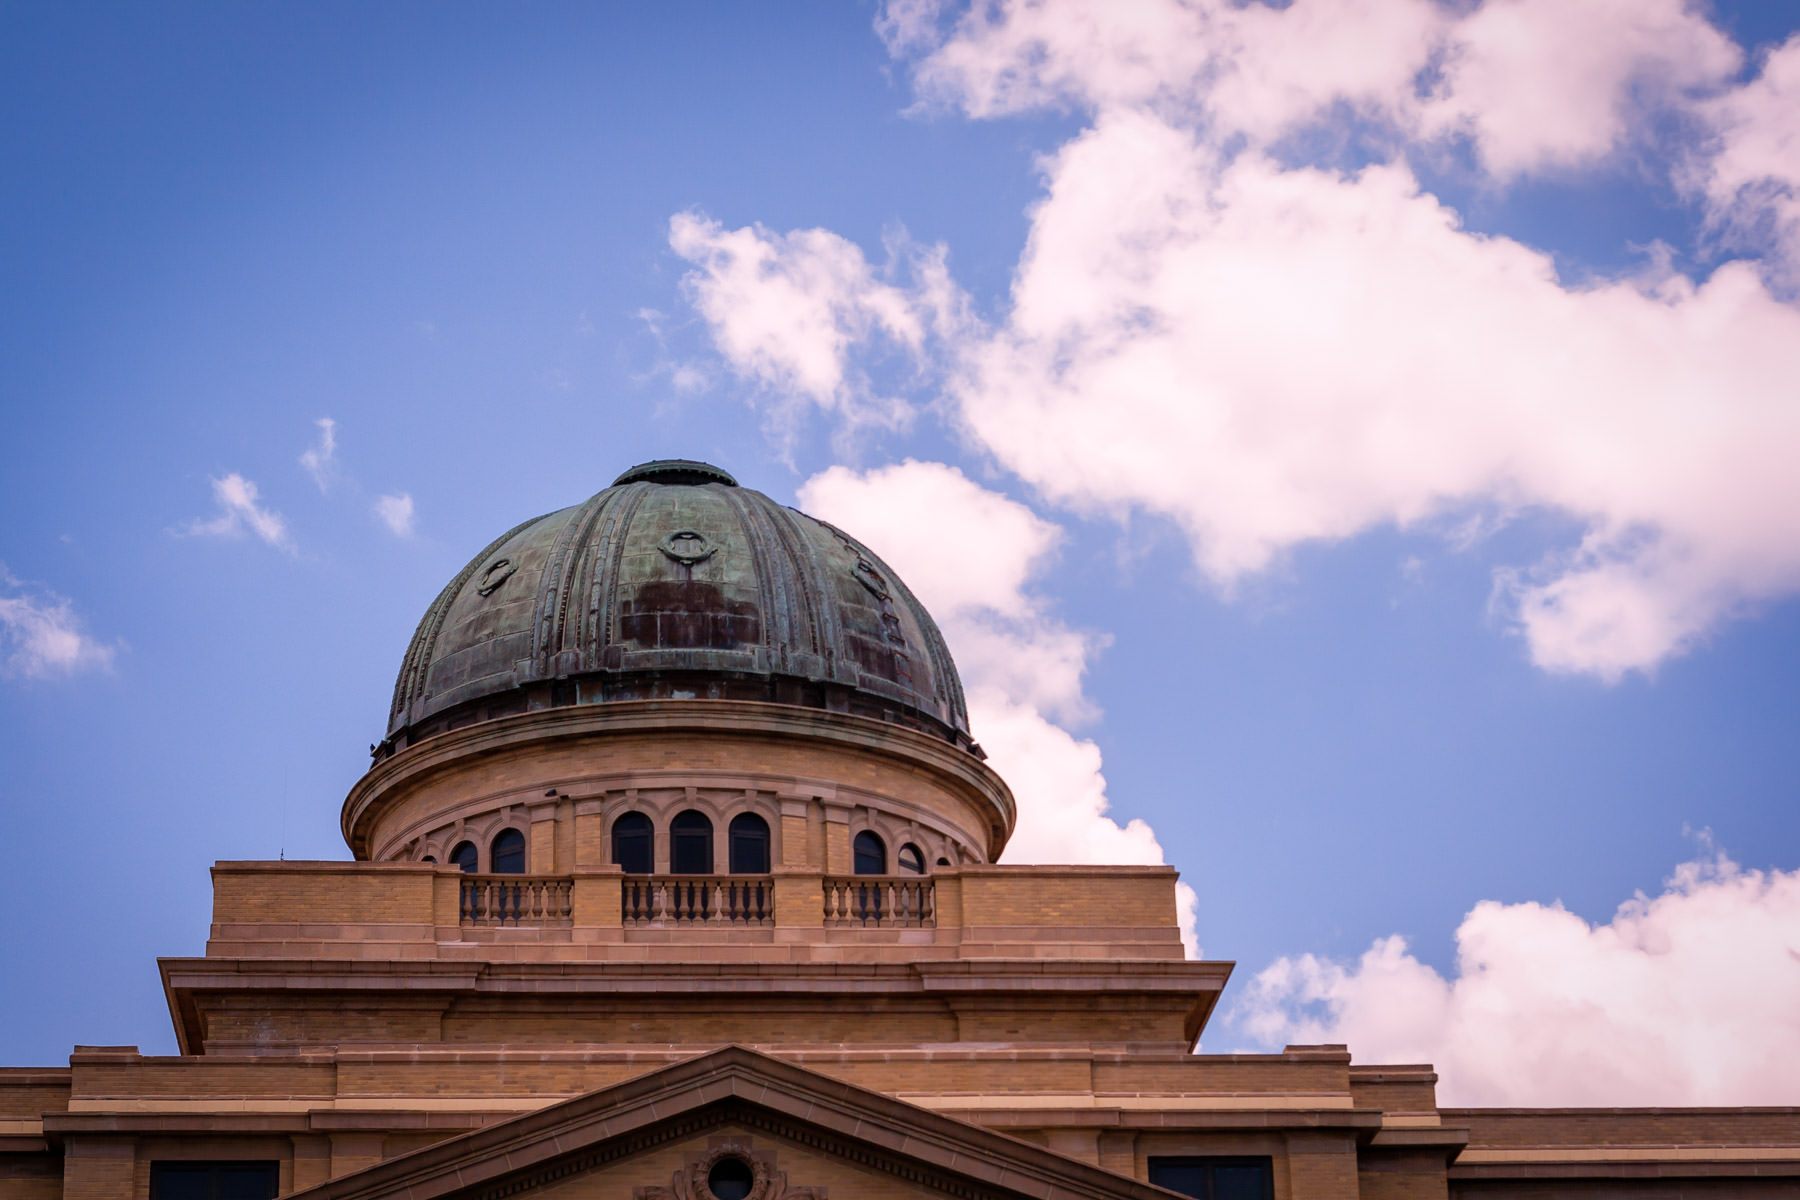 The tarnished bronze dome atop Texas A&M University's Academic Building.